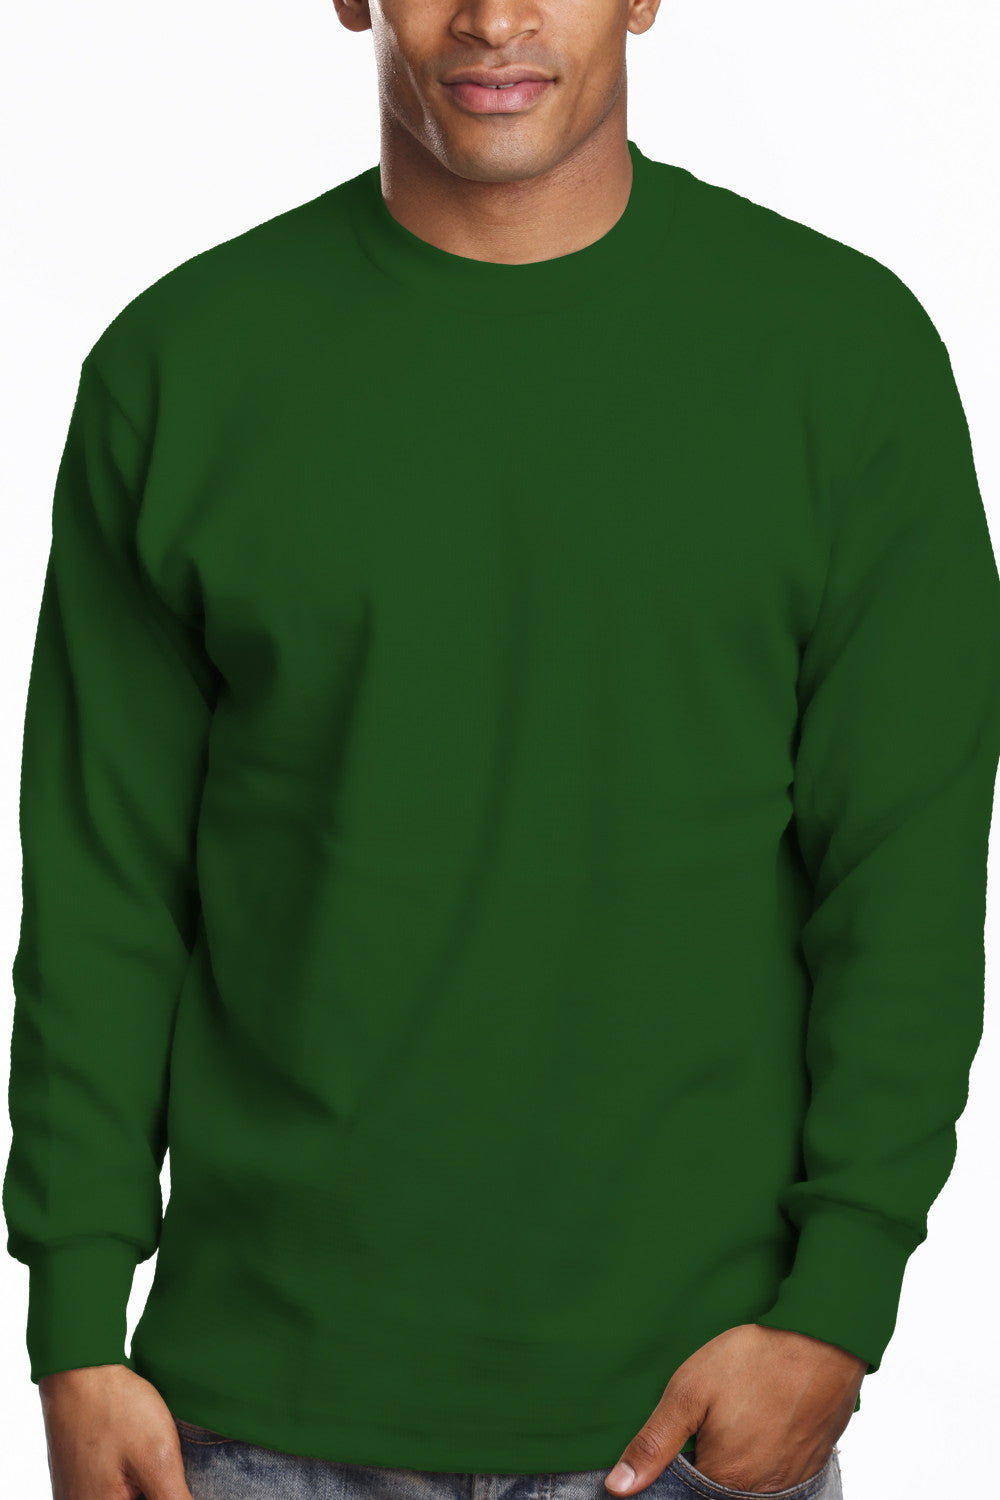 Mens Long Sleeve Super Heavy Shirt Dark Green